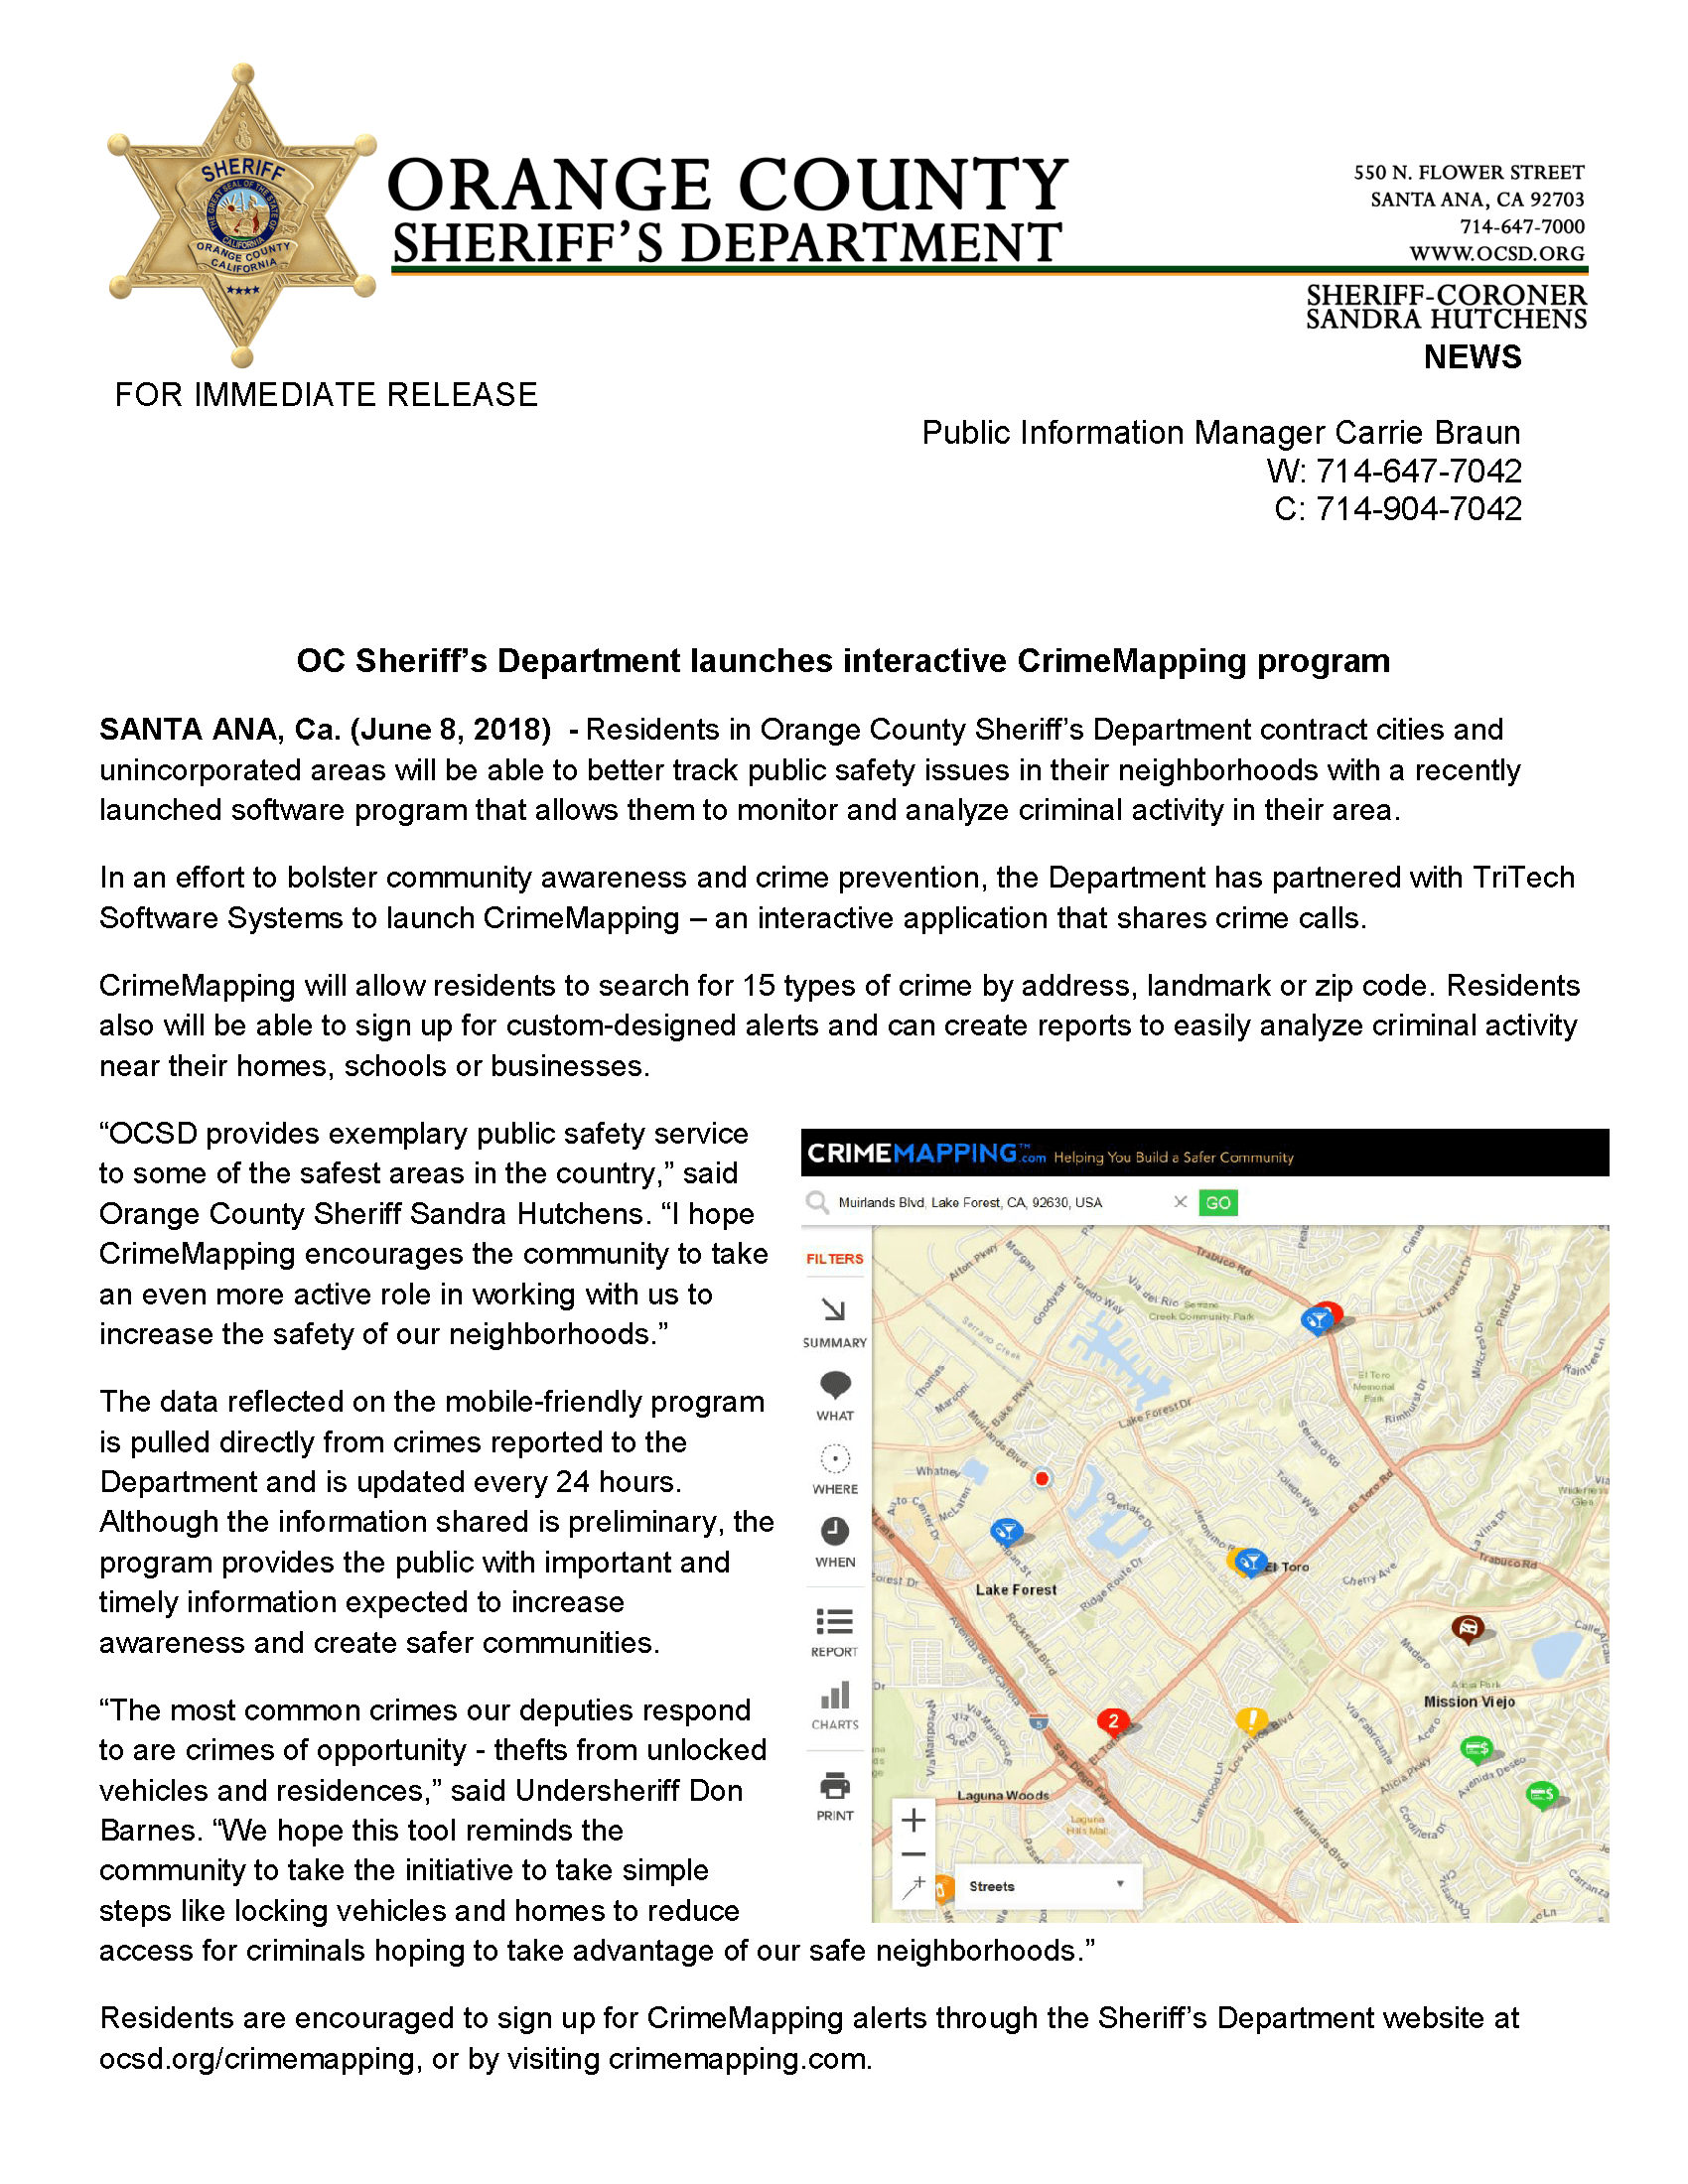 Contents of a press release by the Orange County Sheriff's Department regarding new crime mapping